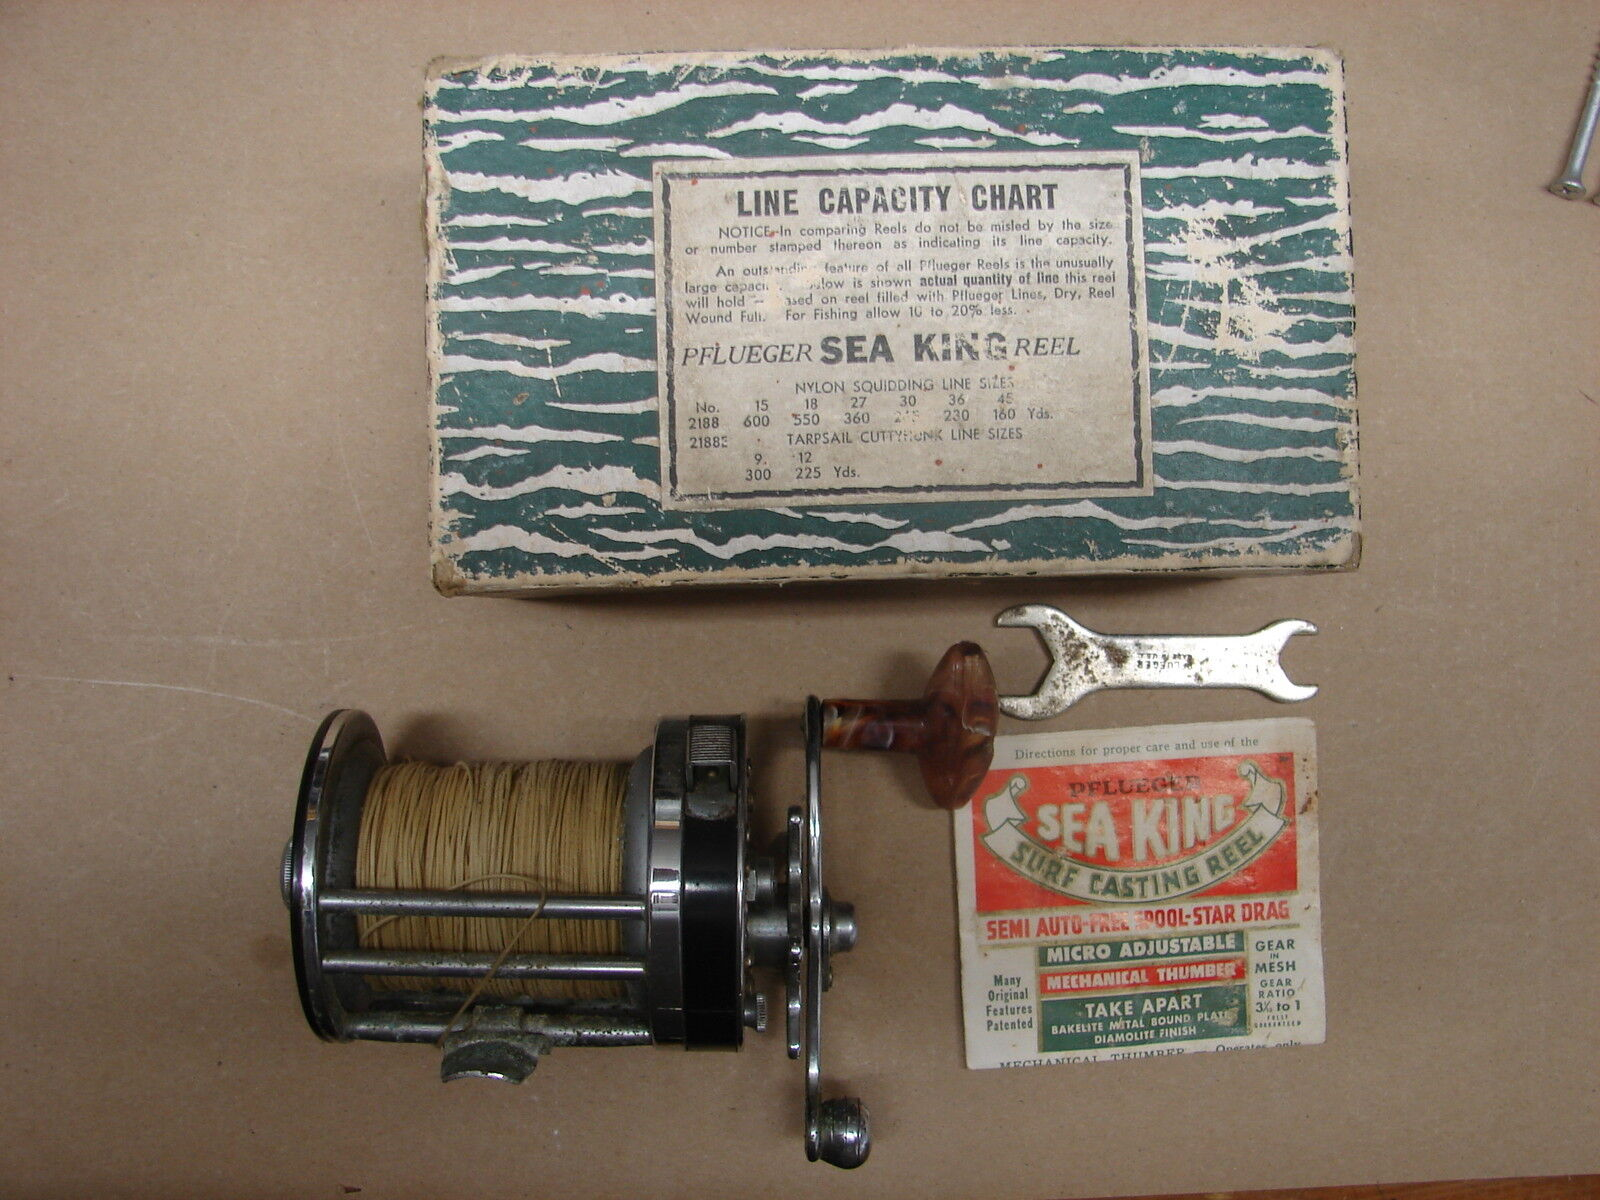 Vintage Pflueger Sea King Surf Casting Reel 2188 in Box with instructions wrench